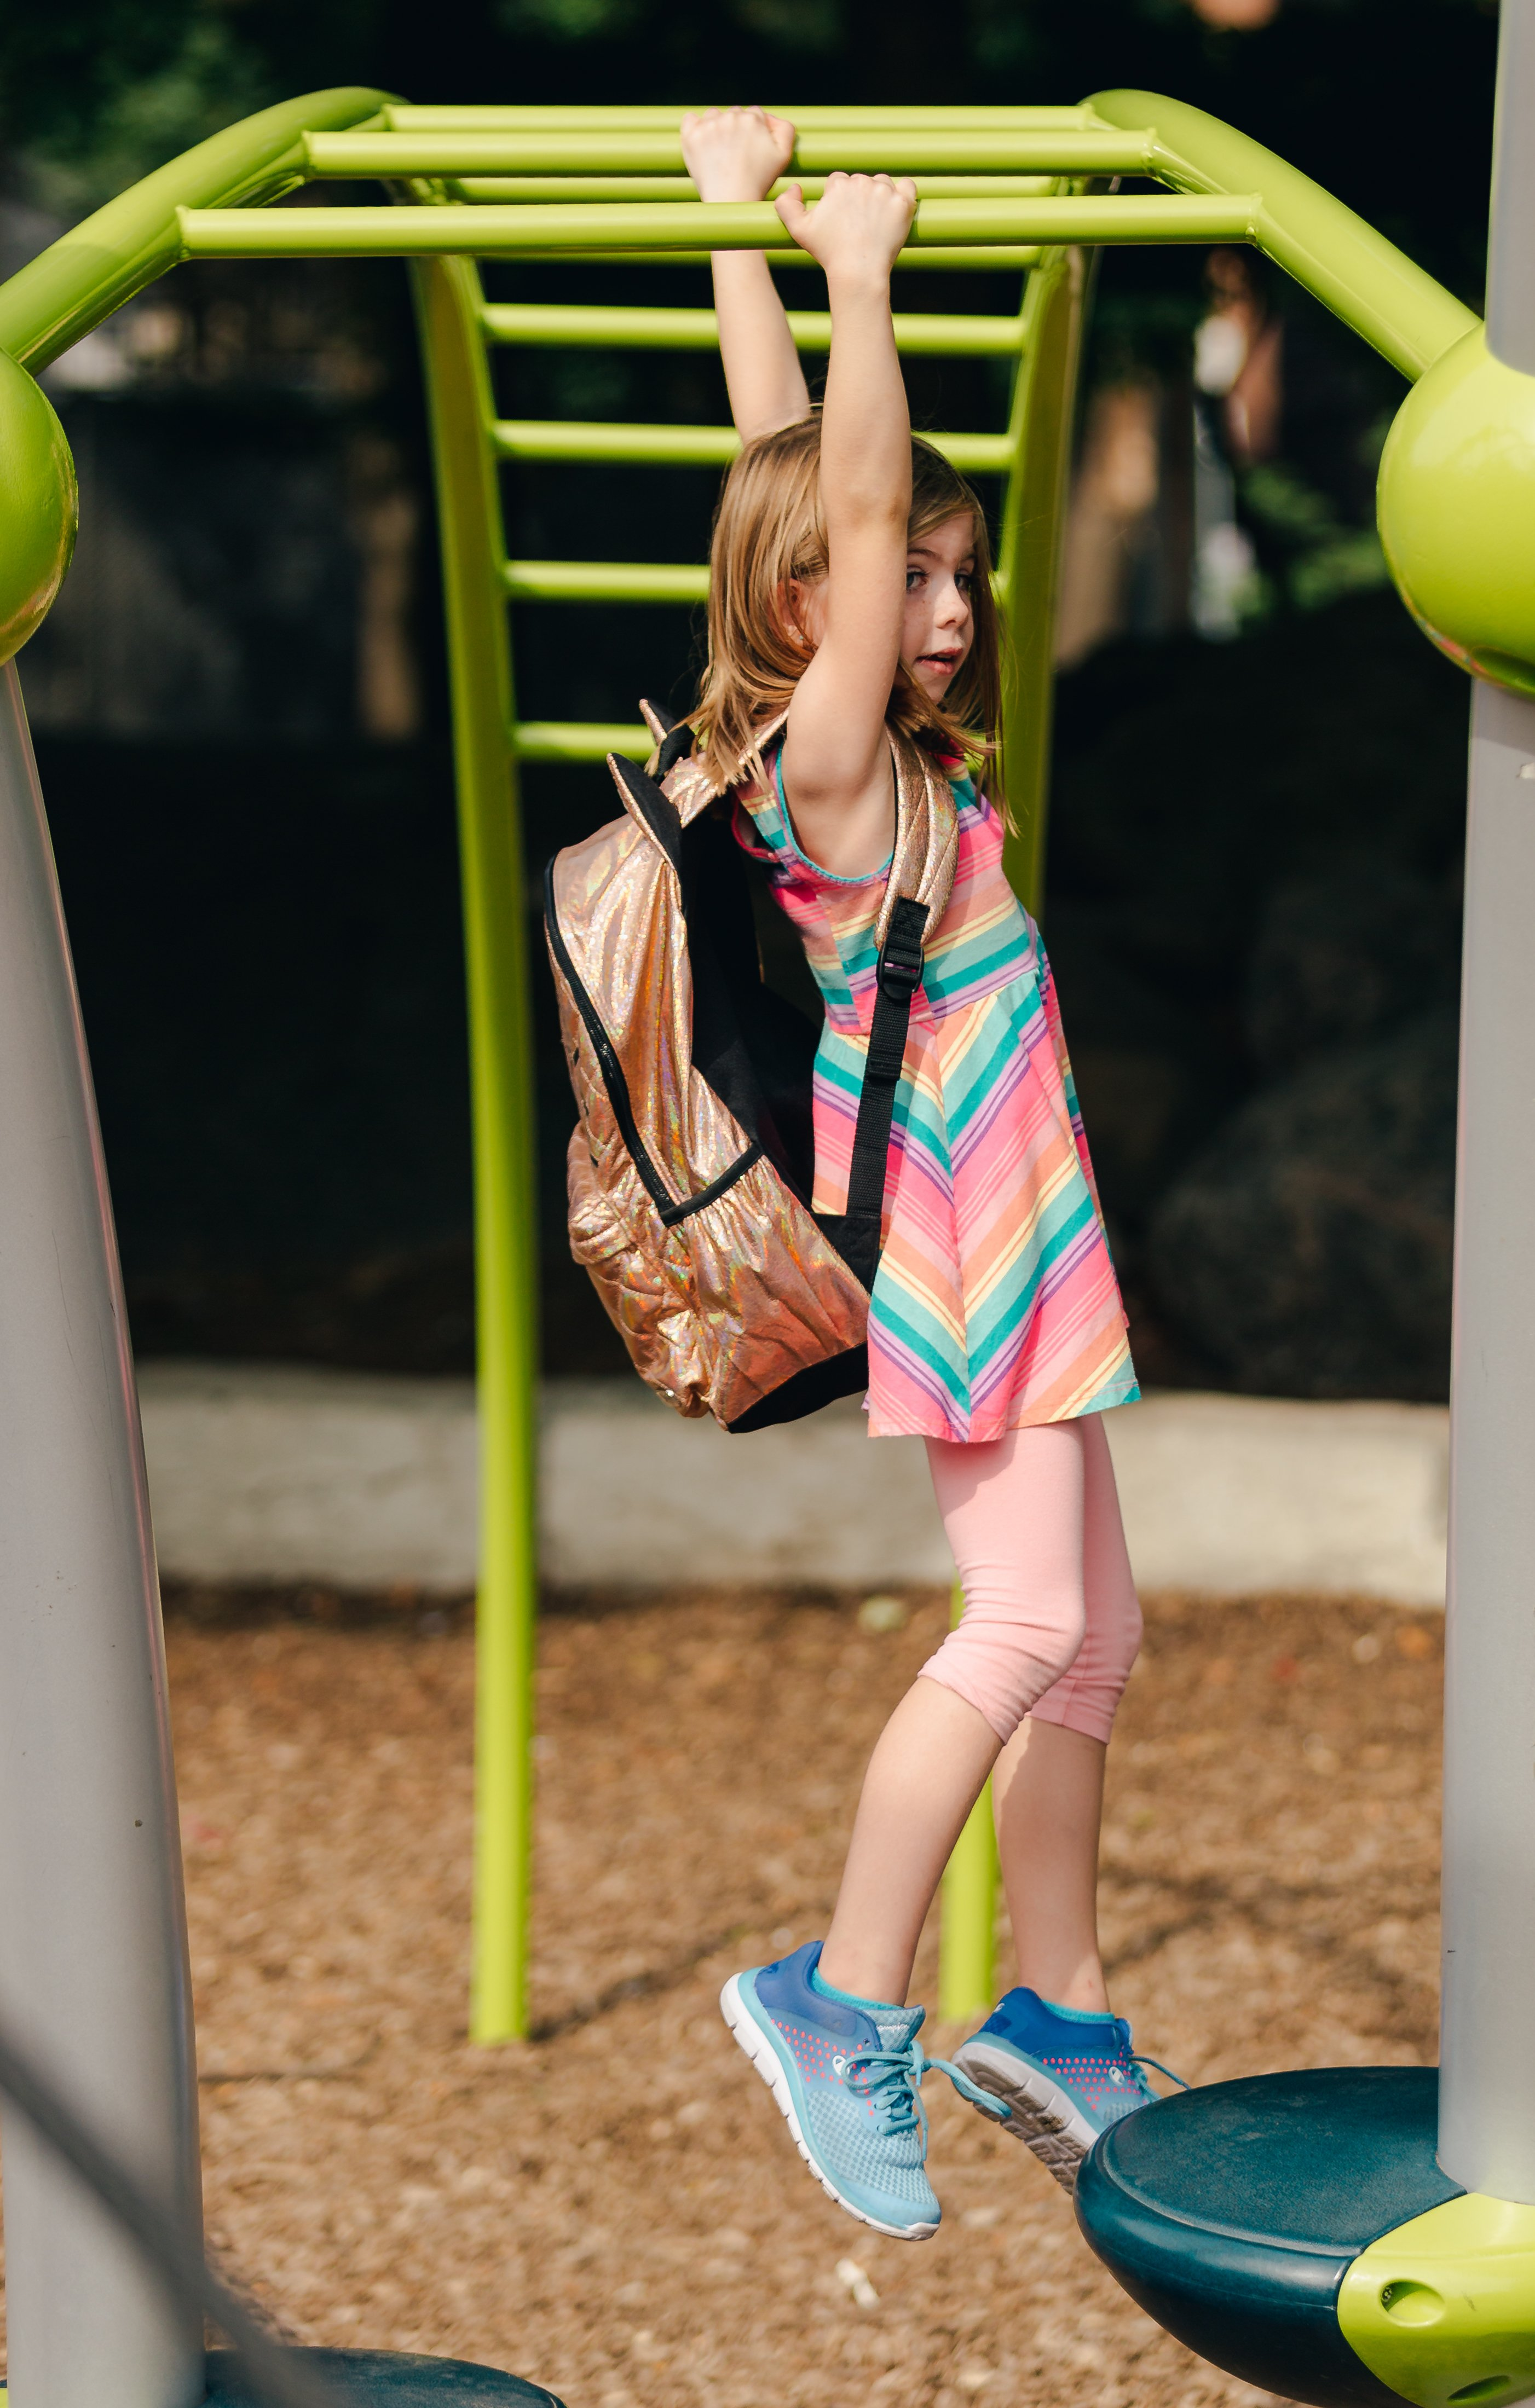 young-girl-swinging-on-bars-with-backpack_4460x4460.jpg